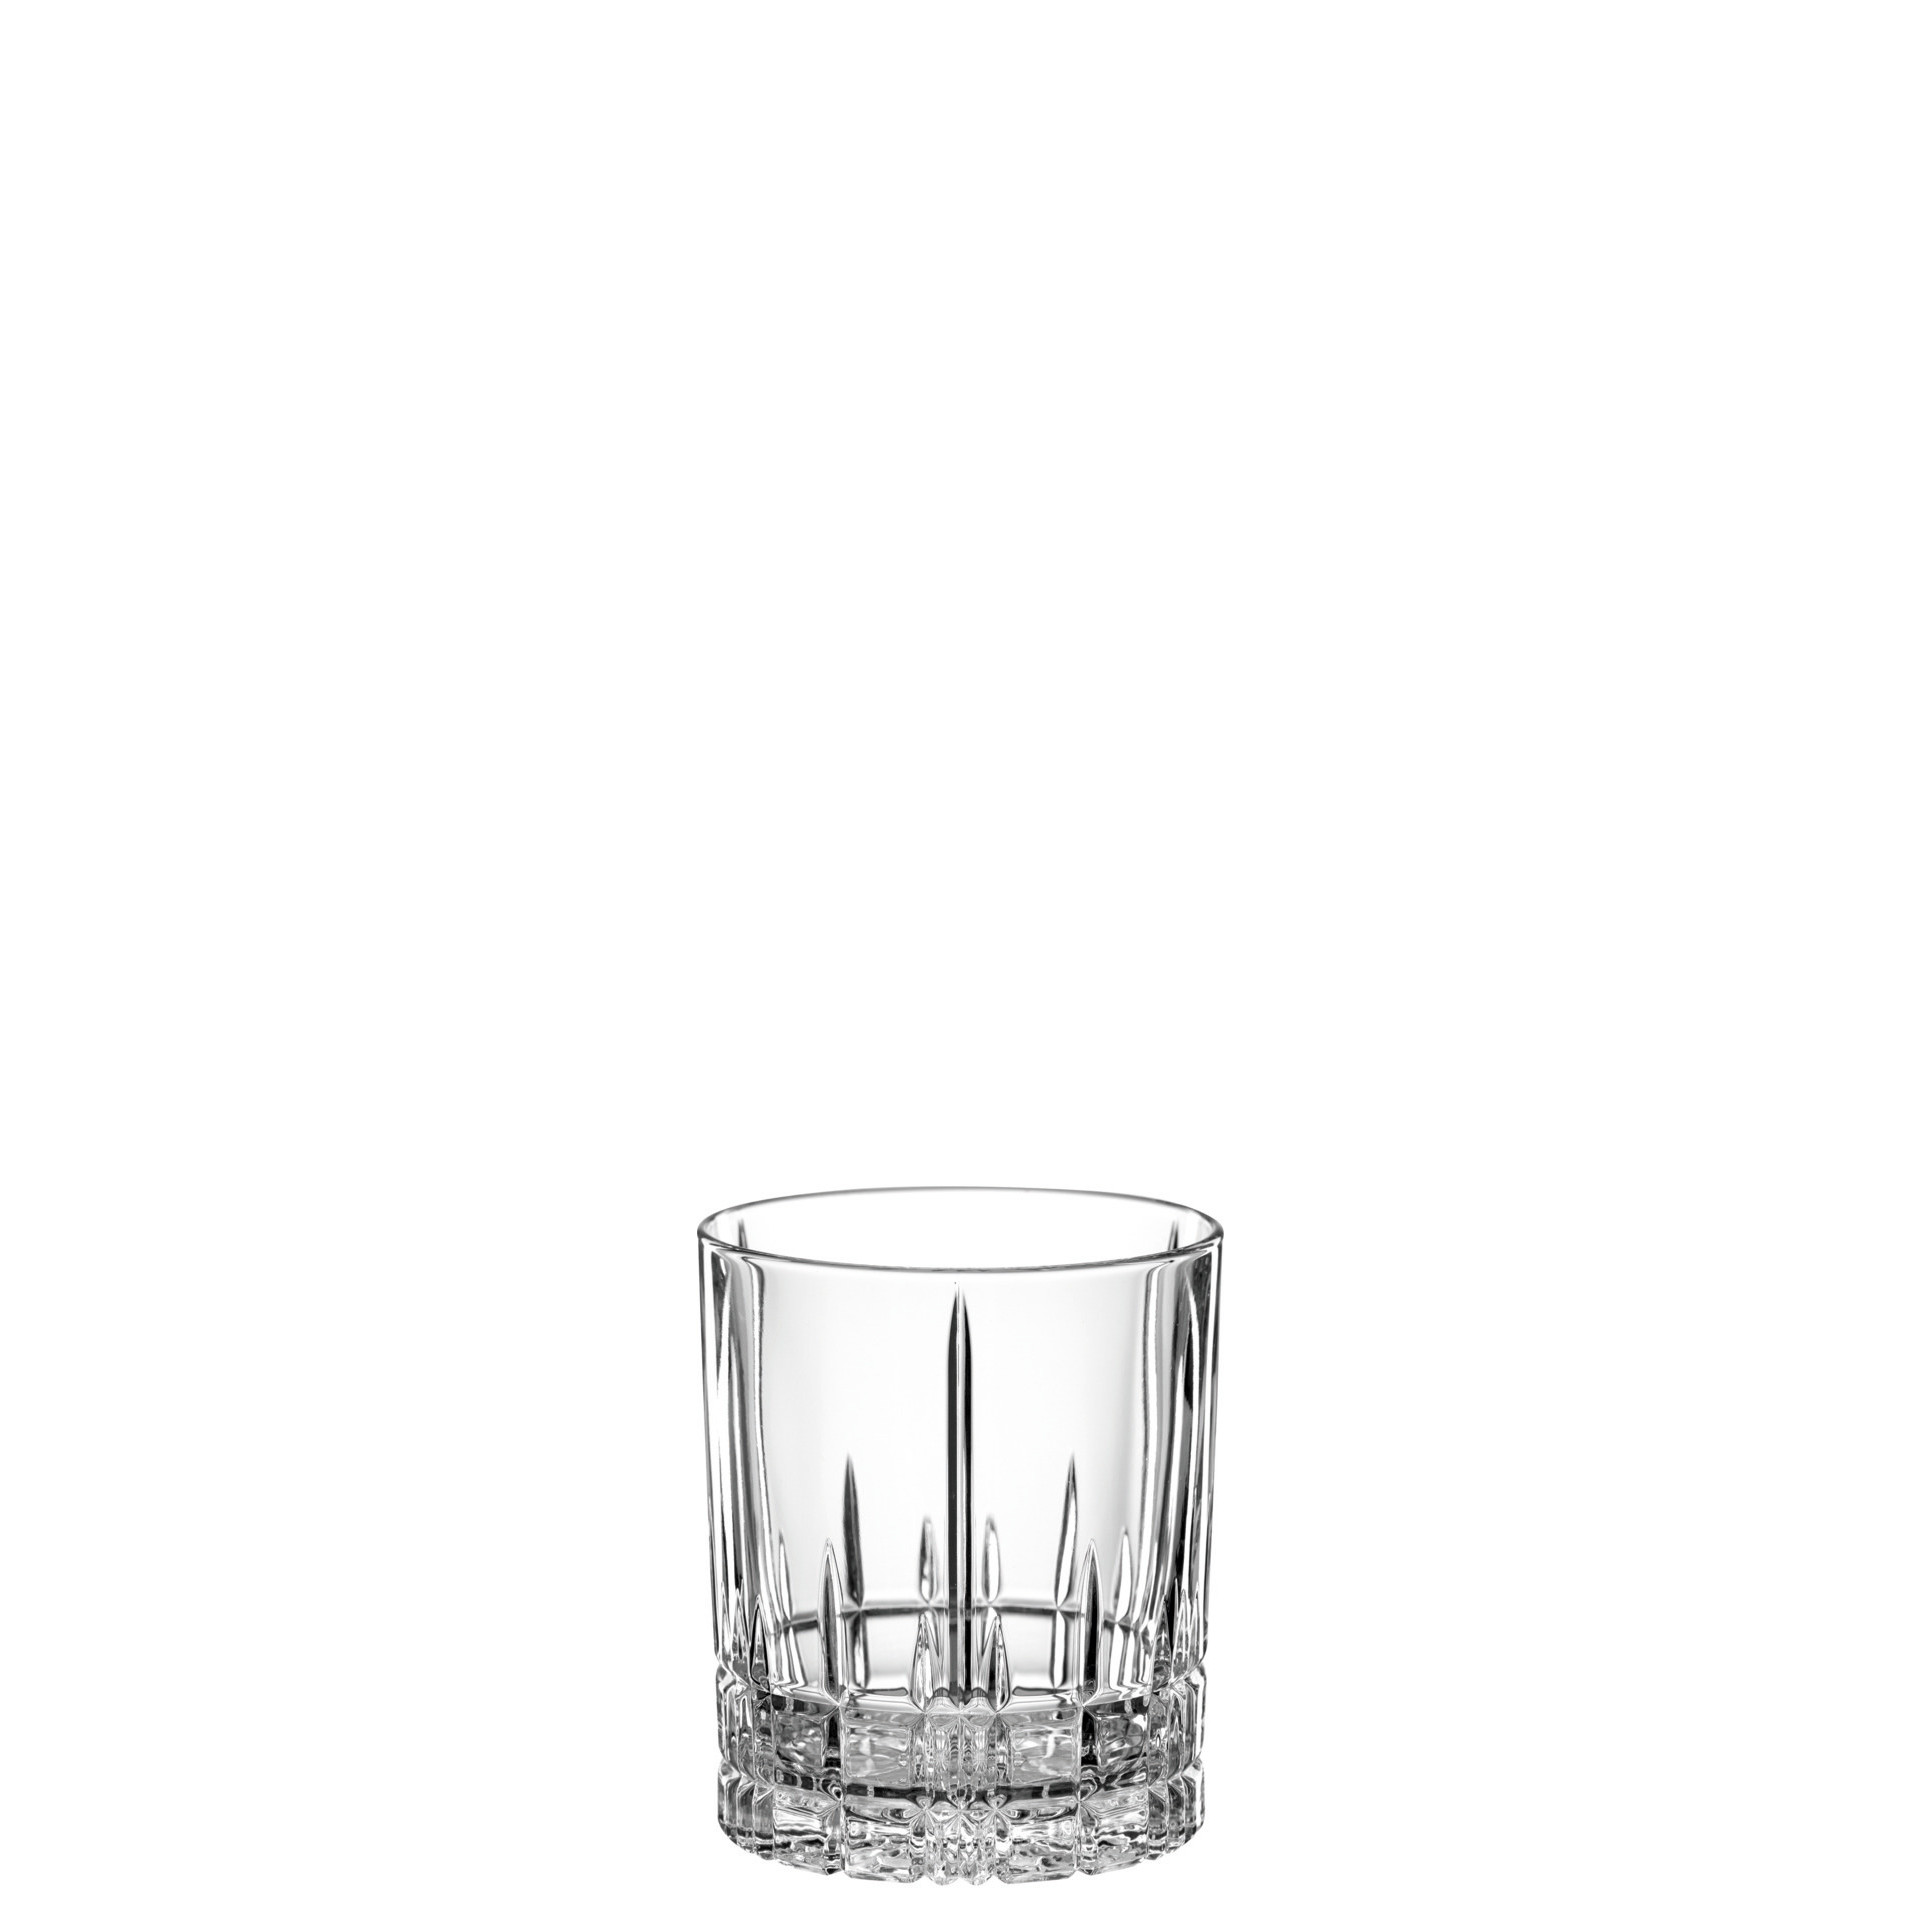 Perfect Serve, Whiskyglas D.O.F. ø 86 mm / 0,37 l